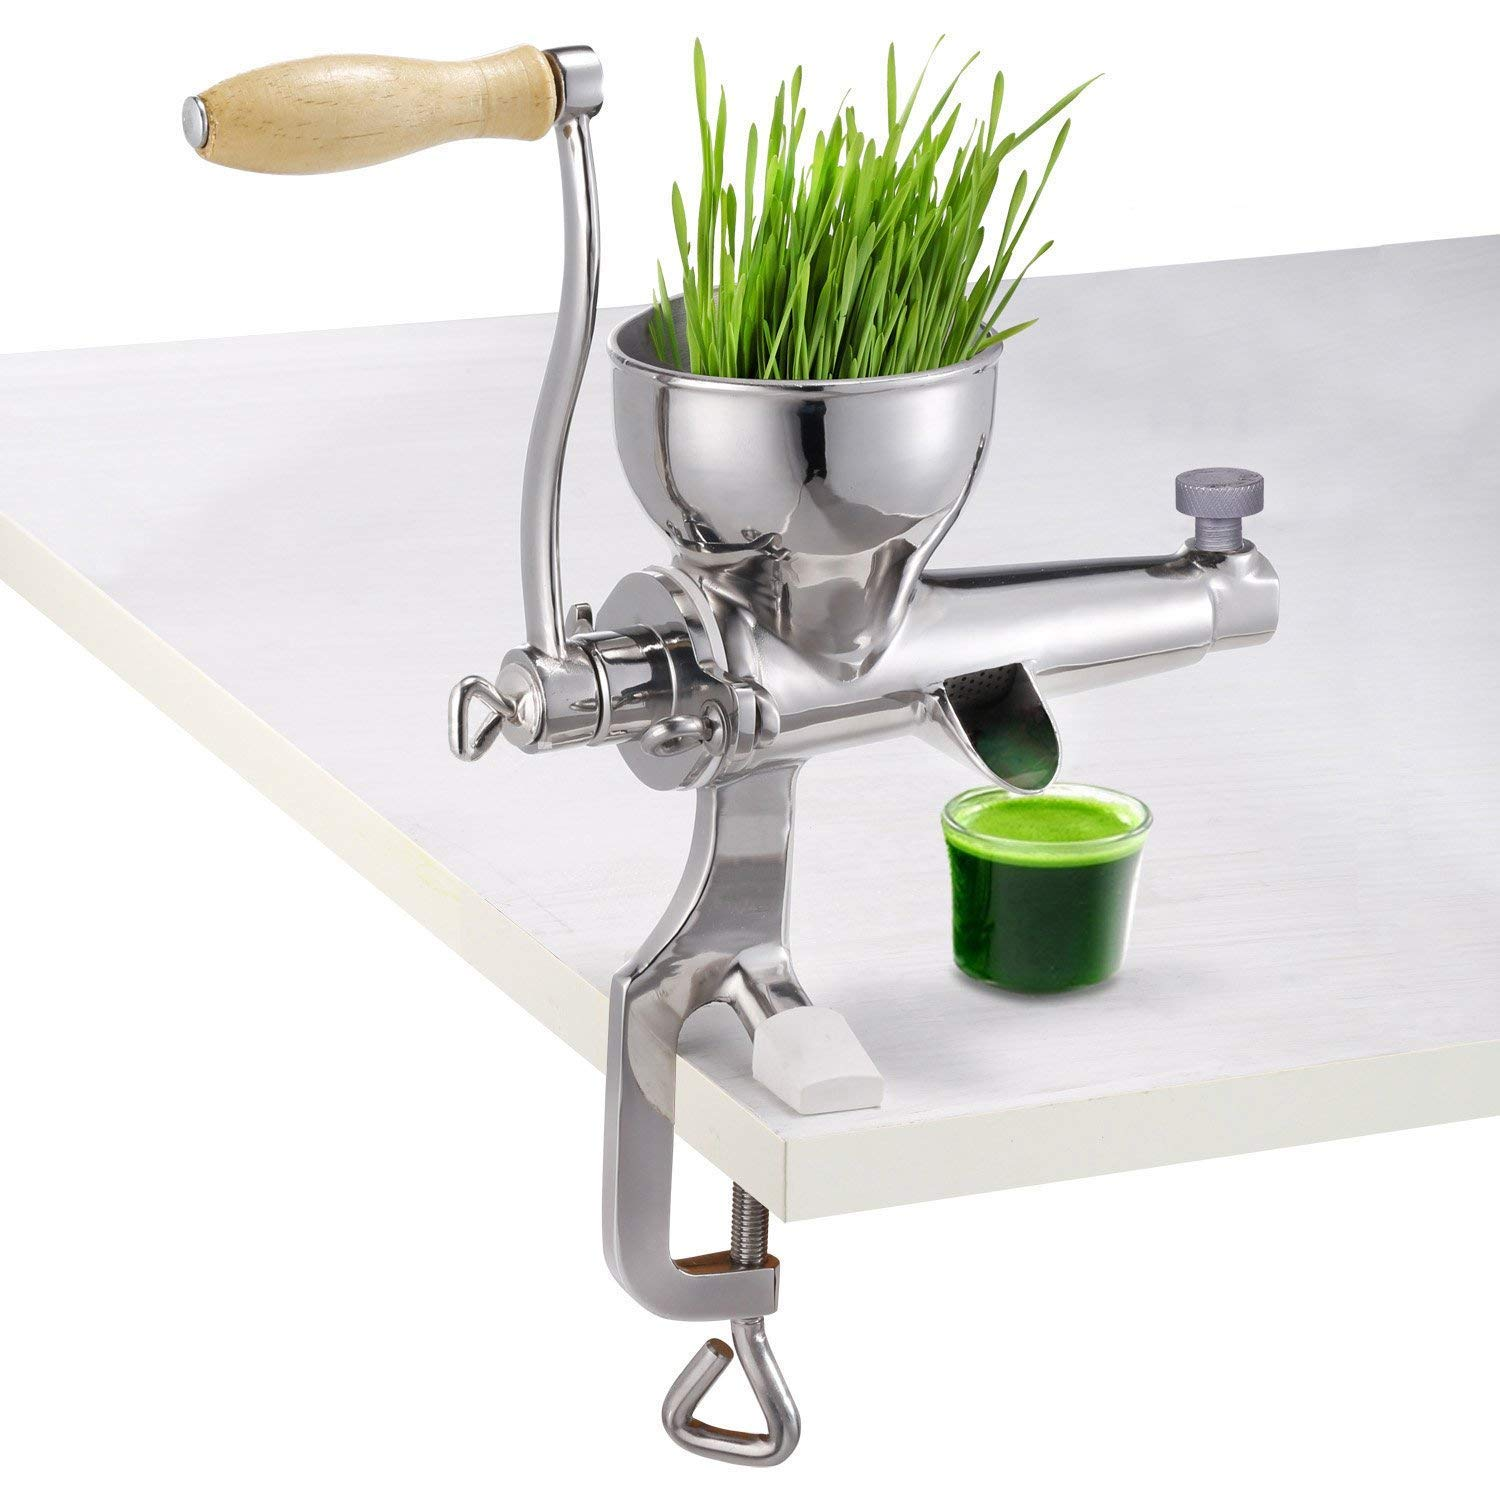 Hand Manual Wheatgrass Juicer Heavy Duty Stainless Steel Leafy Green Juicer DIY Extractor Tool COMINHKPR121242